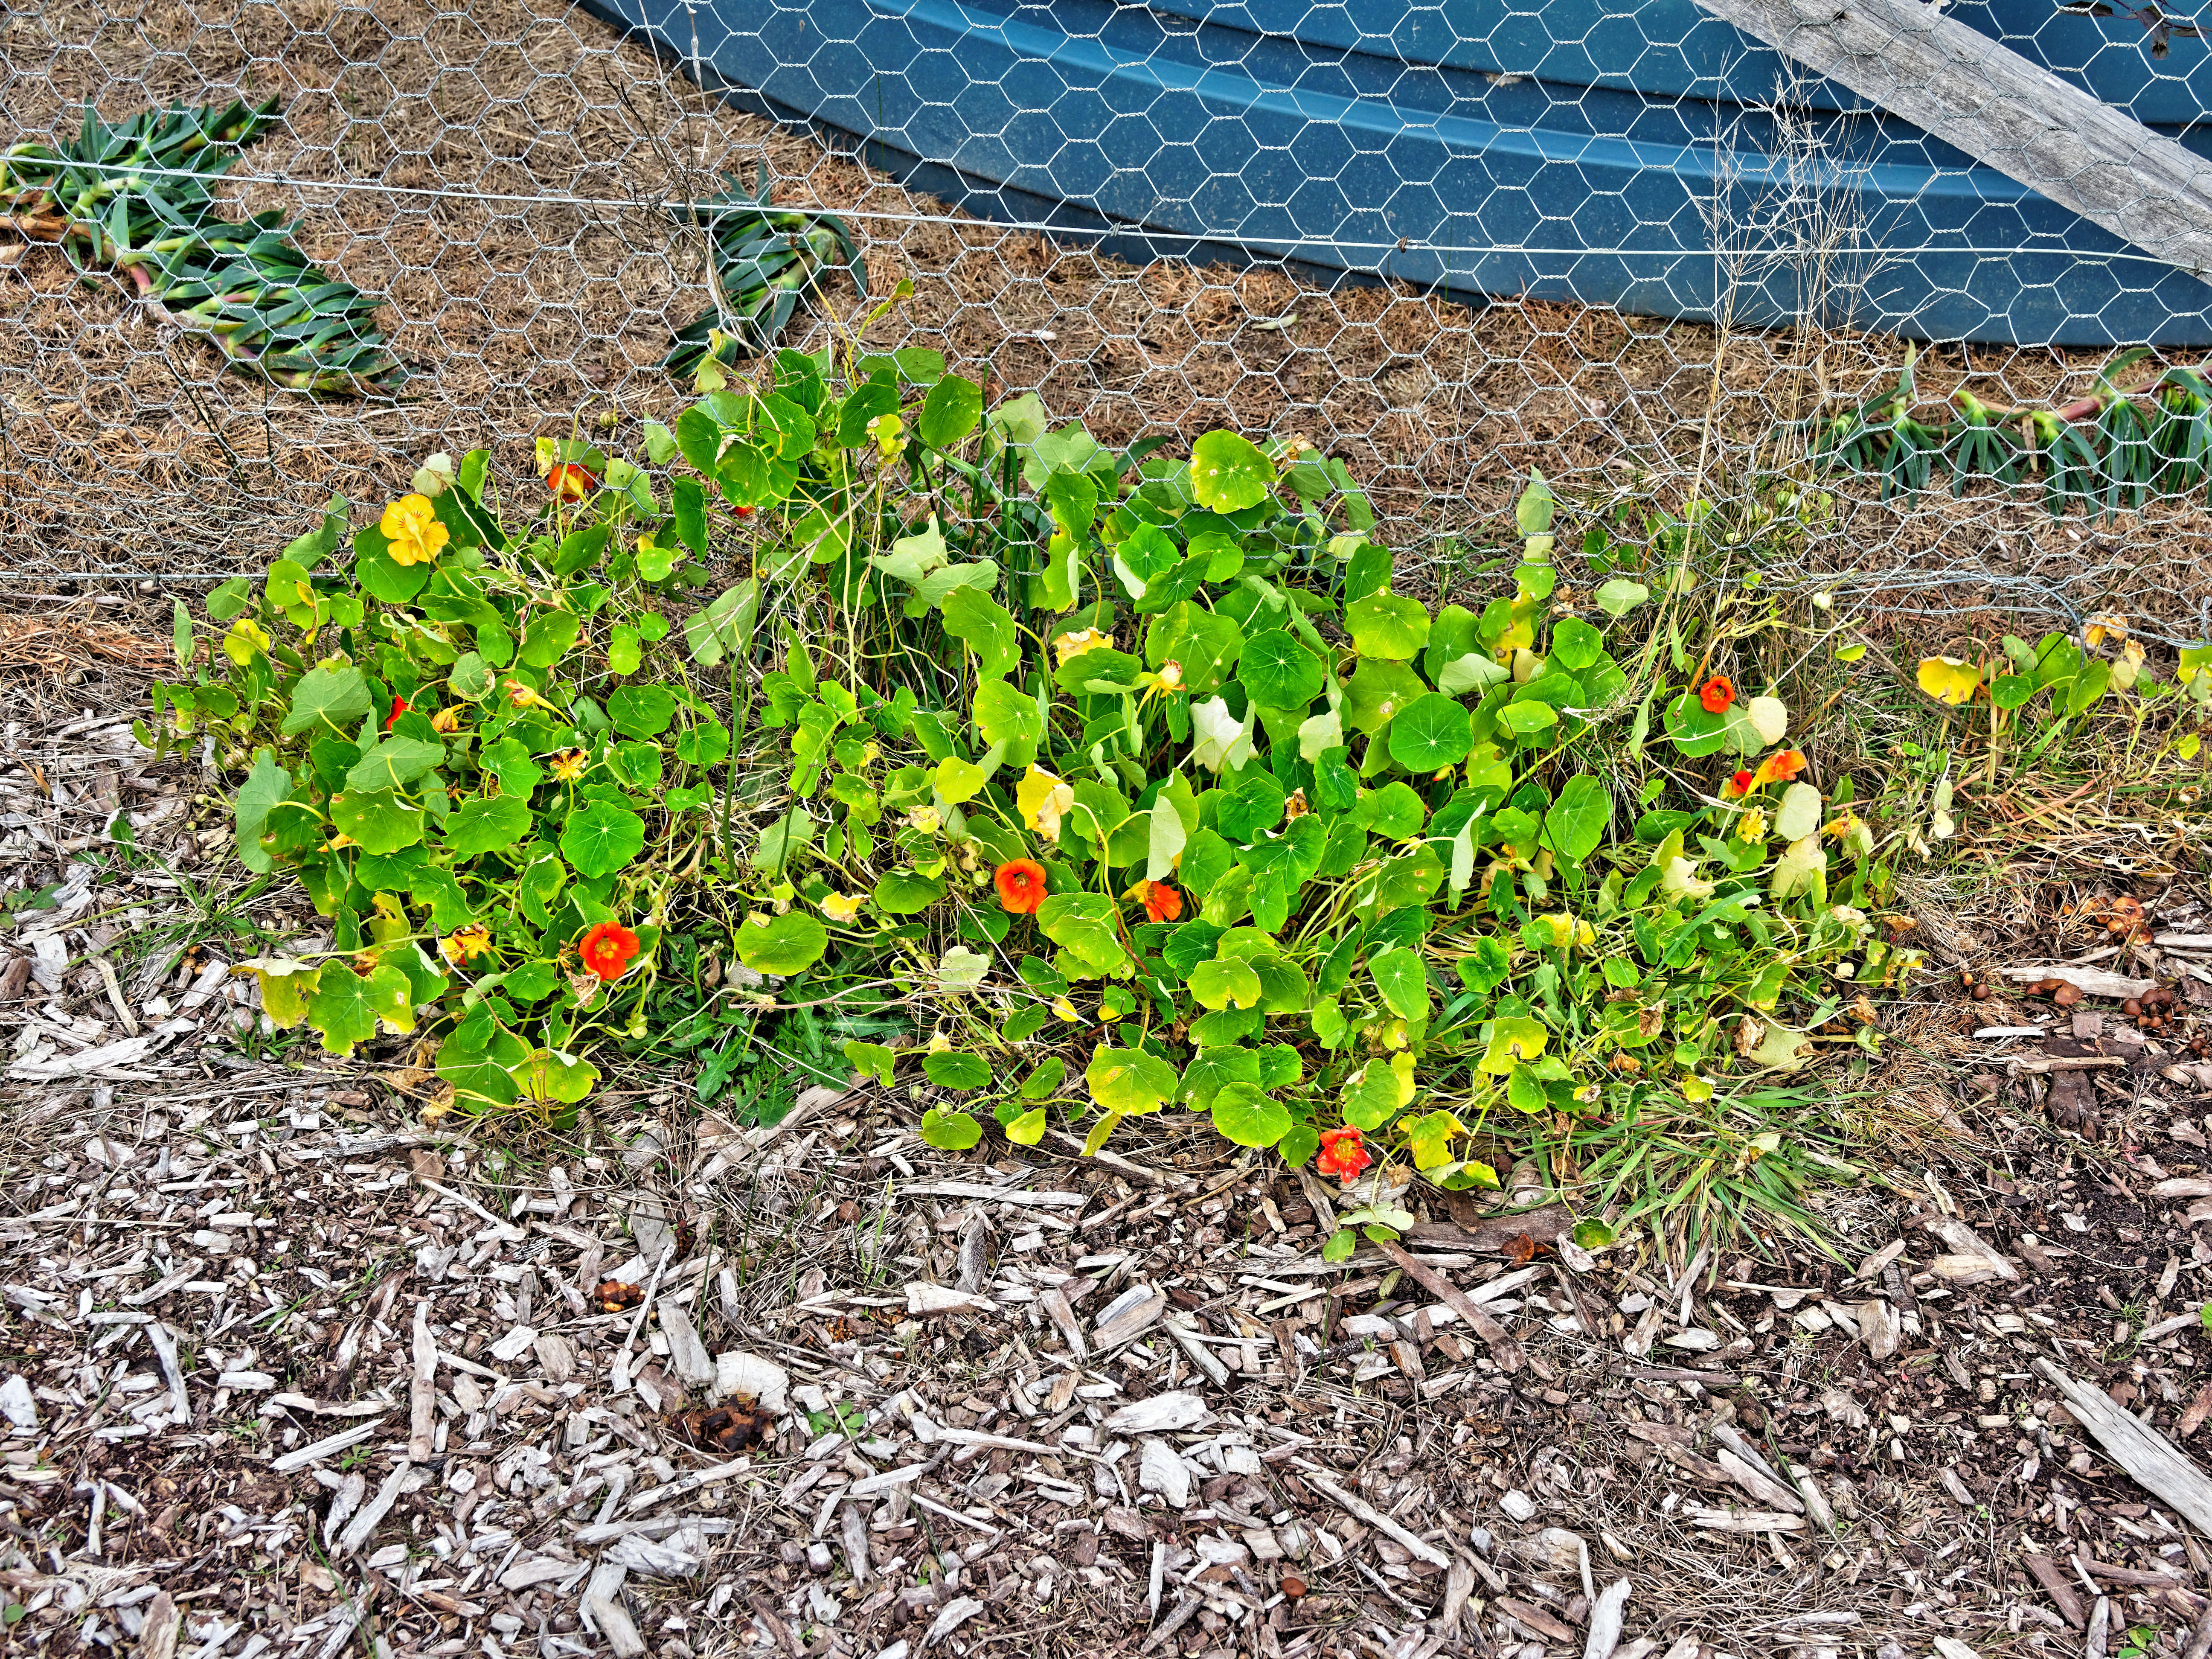 This should be Tropaeolum-4.jpeg.  Is it missing?